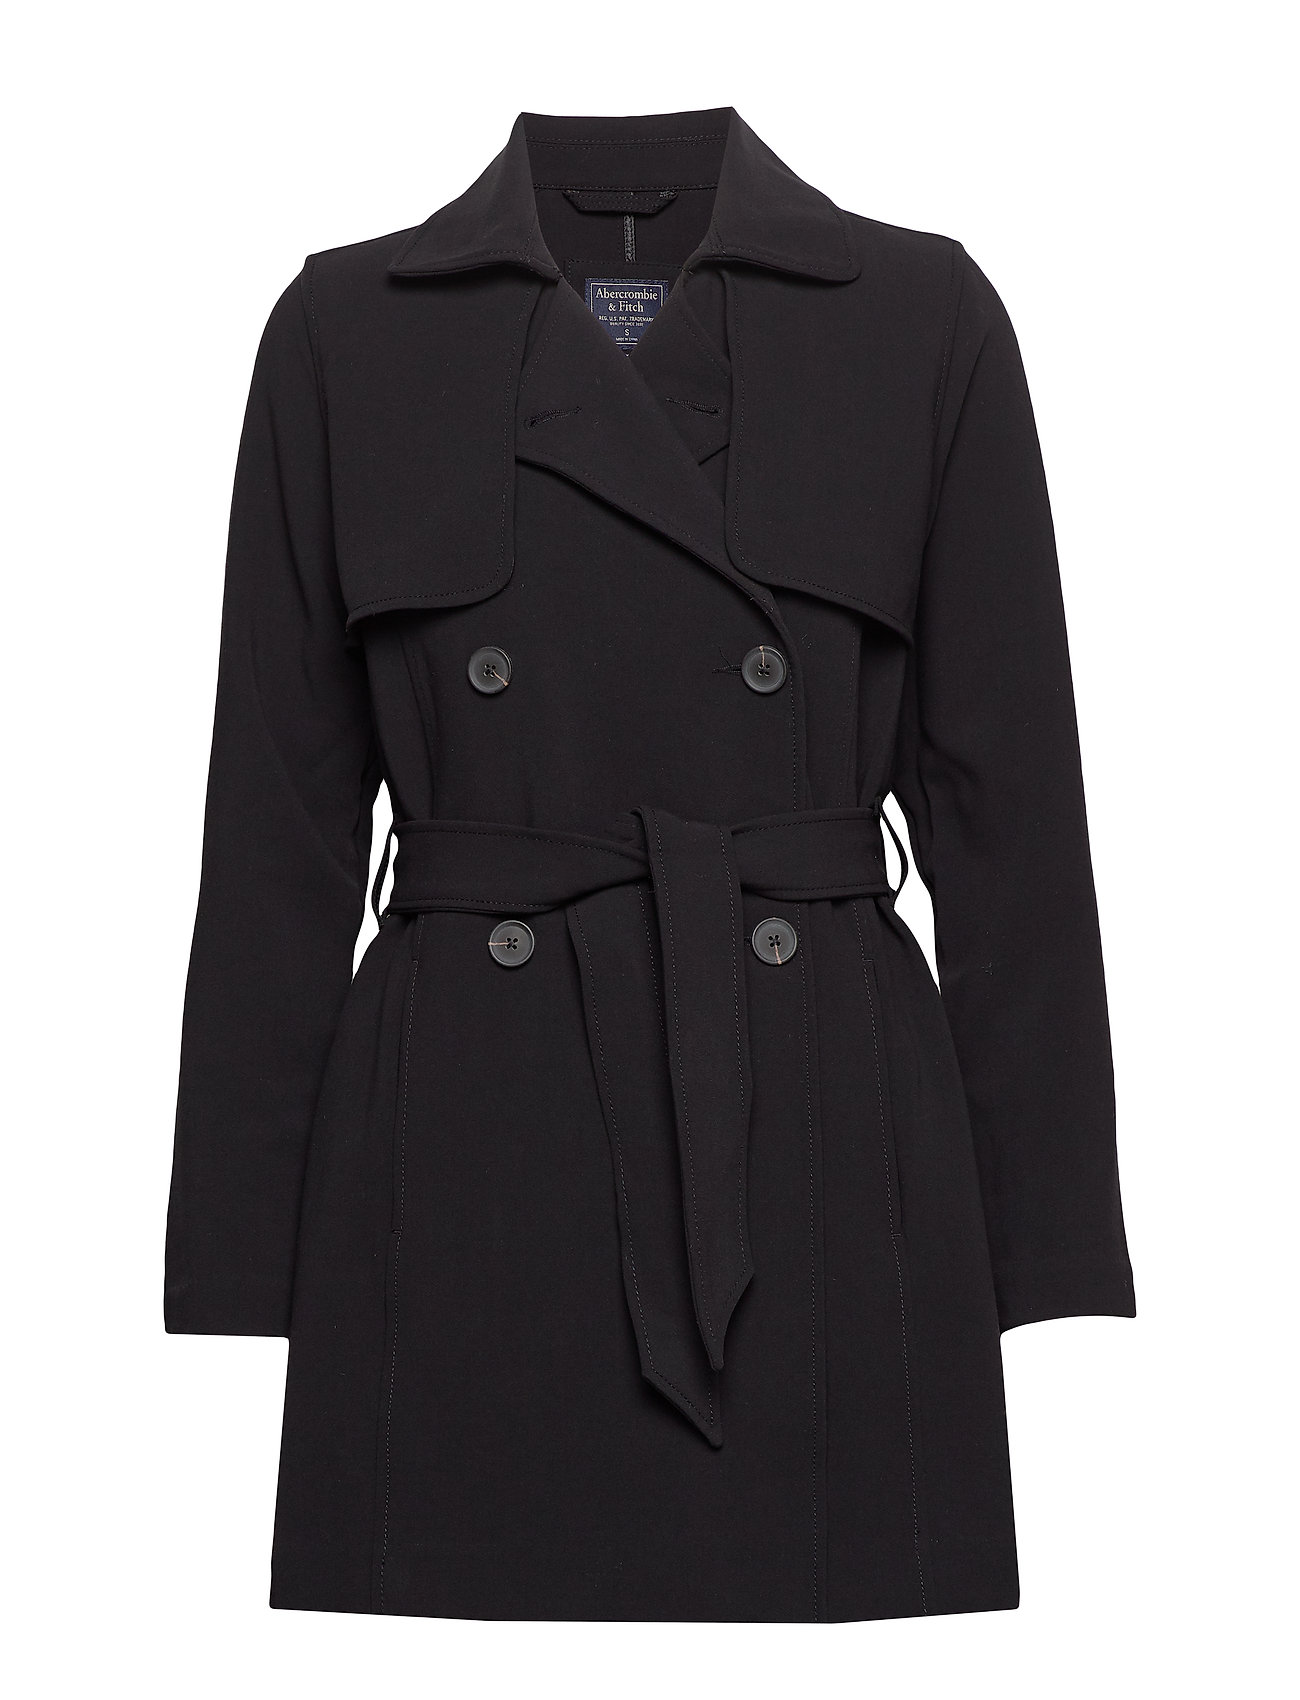 Abercrombie & Fitch Drapey Trench - BLACK DD